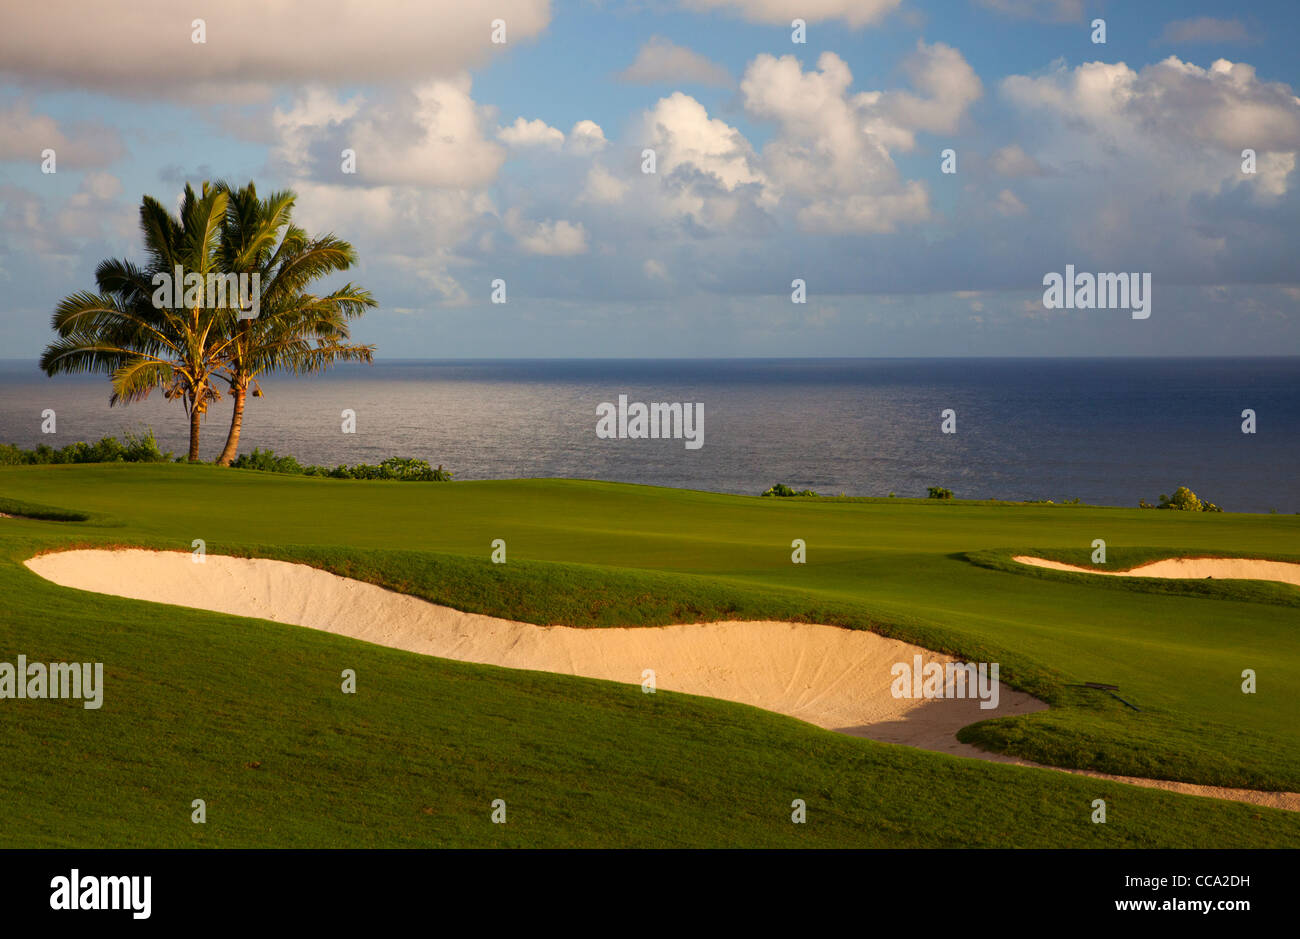 The 14th hole at the Makai Golf Course, Princeville, Kauai, Hawaii. - Stock Image